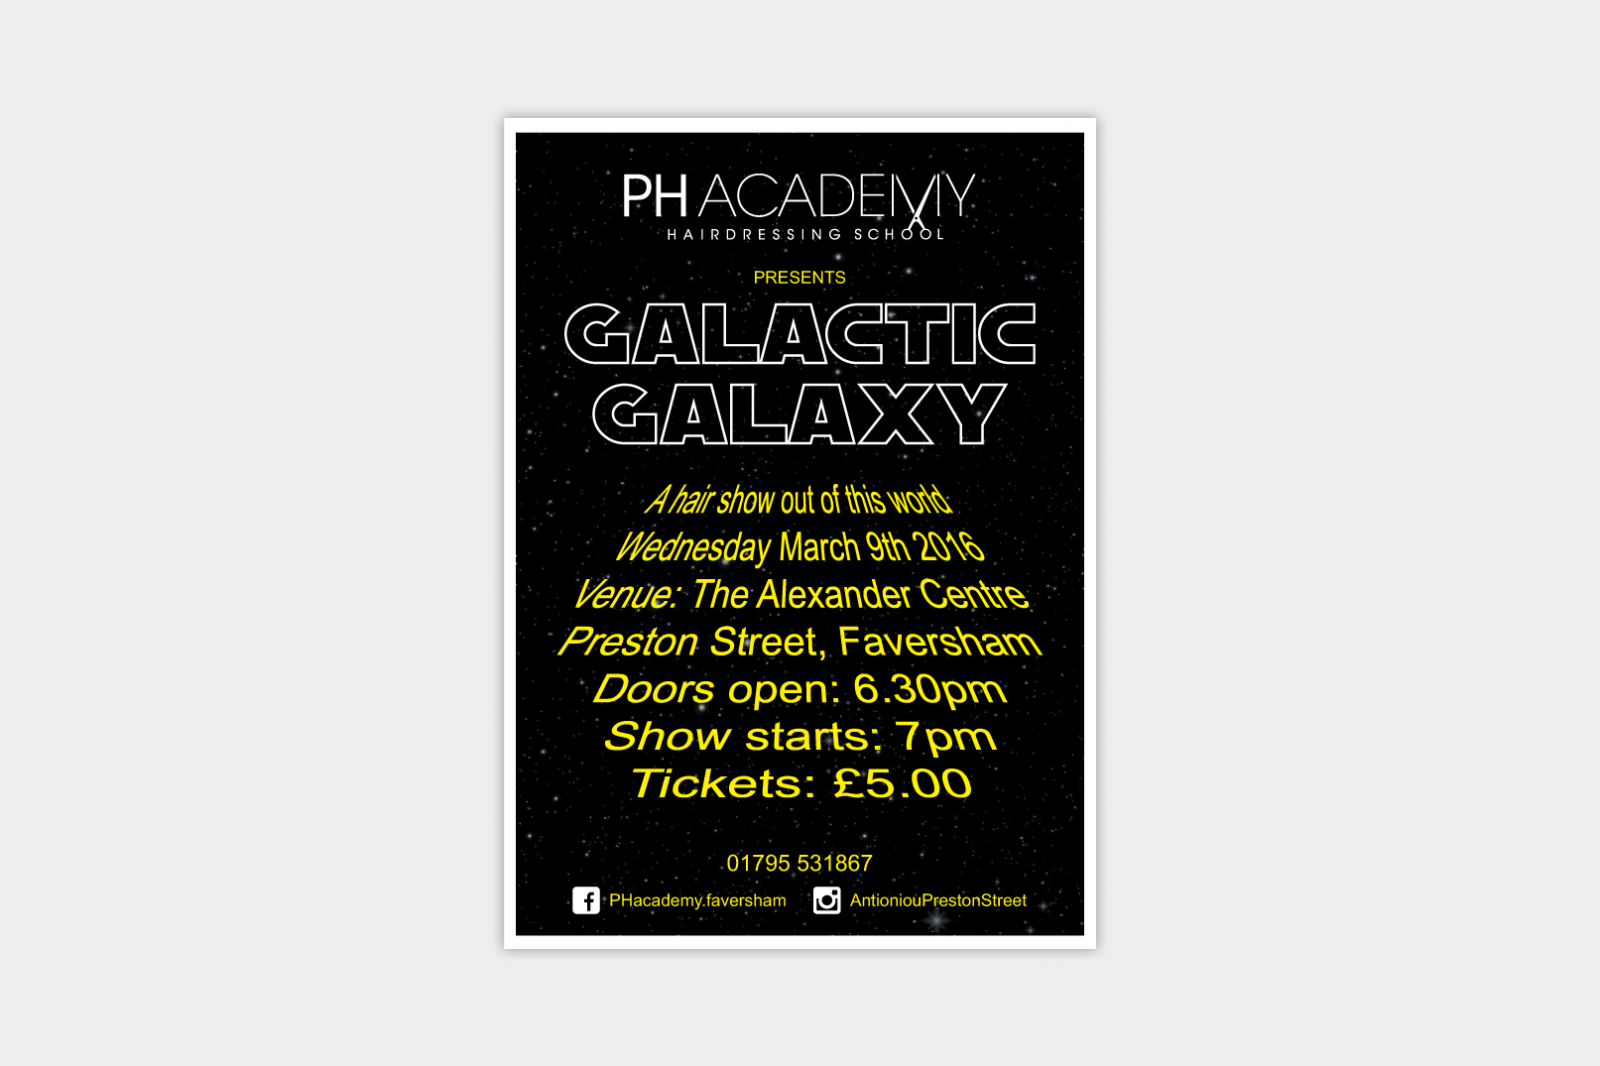 ph-academy-poster-corporate-identity-agency-graphic-design-canterbury.png